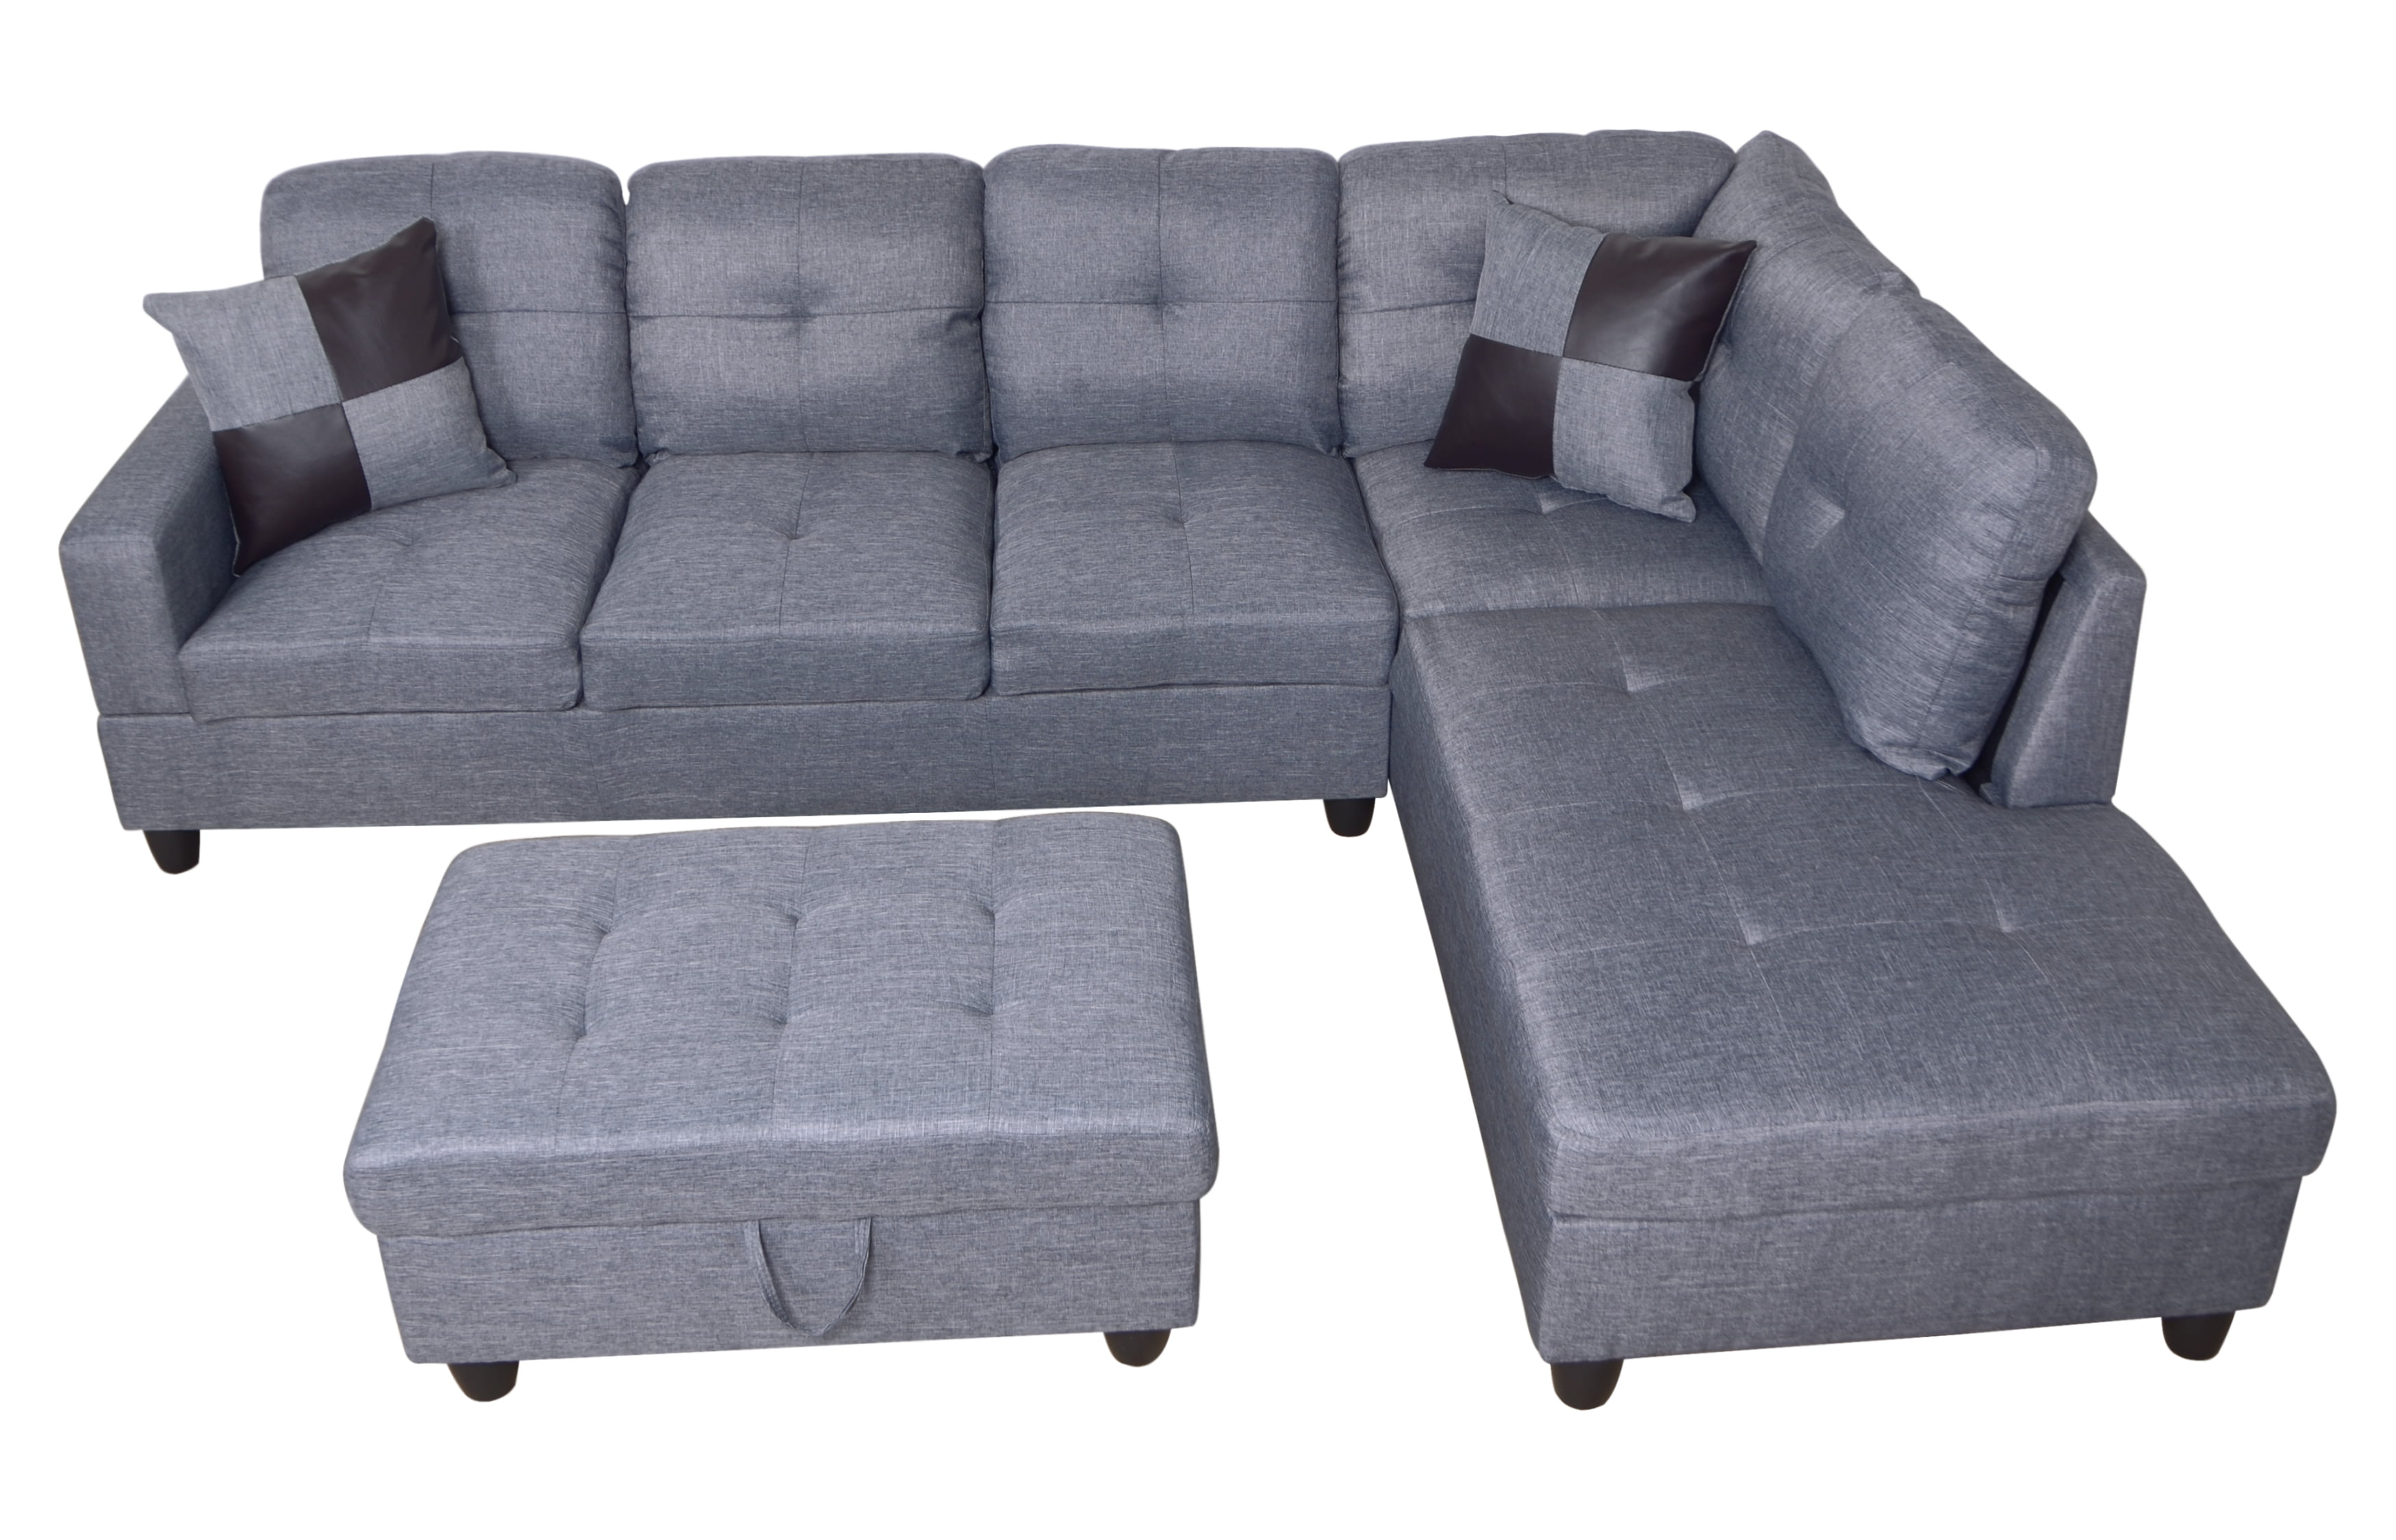 Ult Gray Microfiber Sectional Sofa